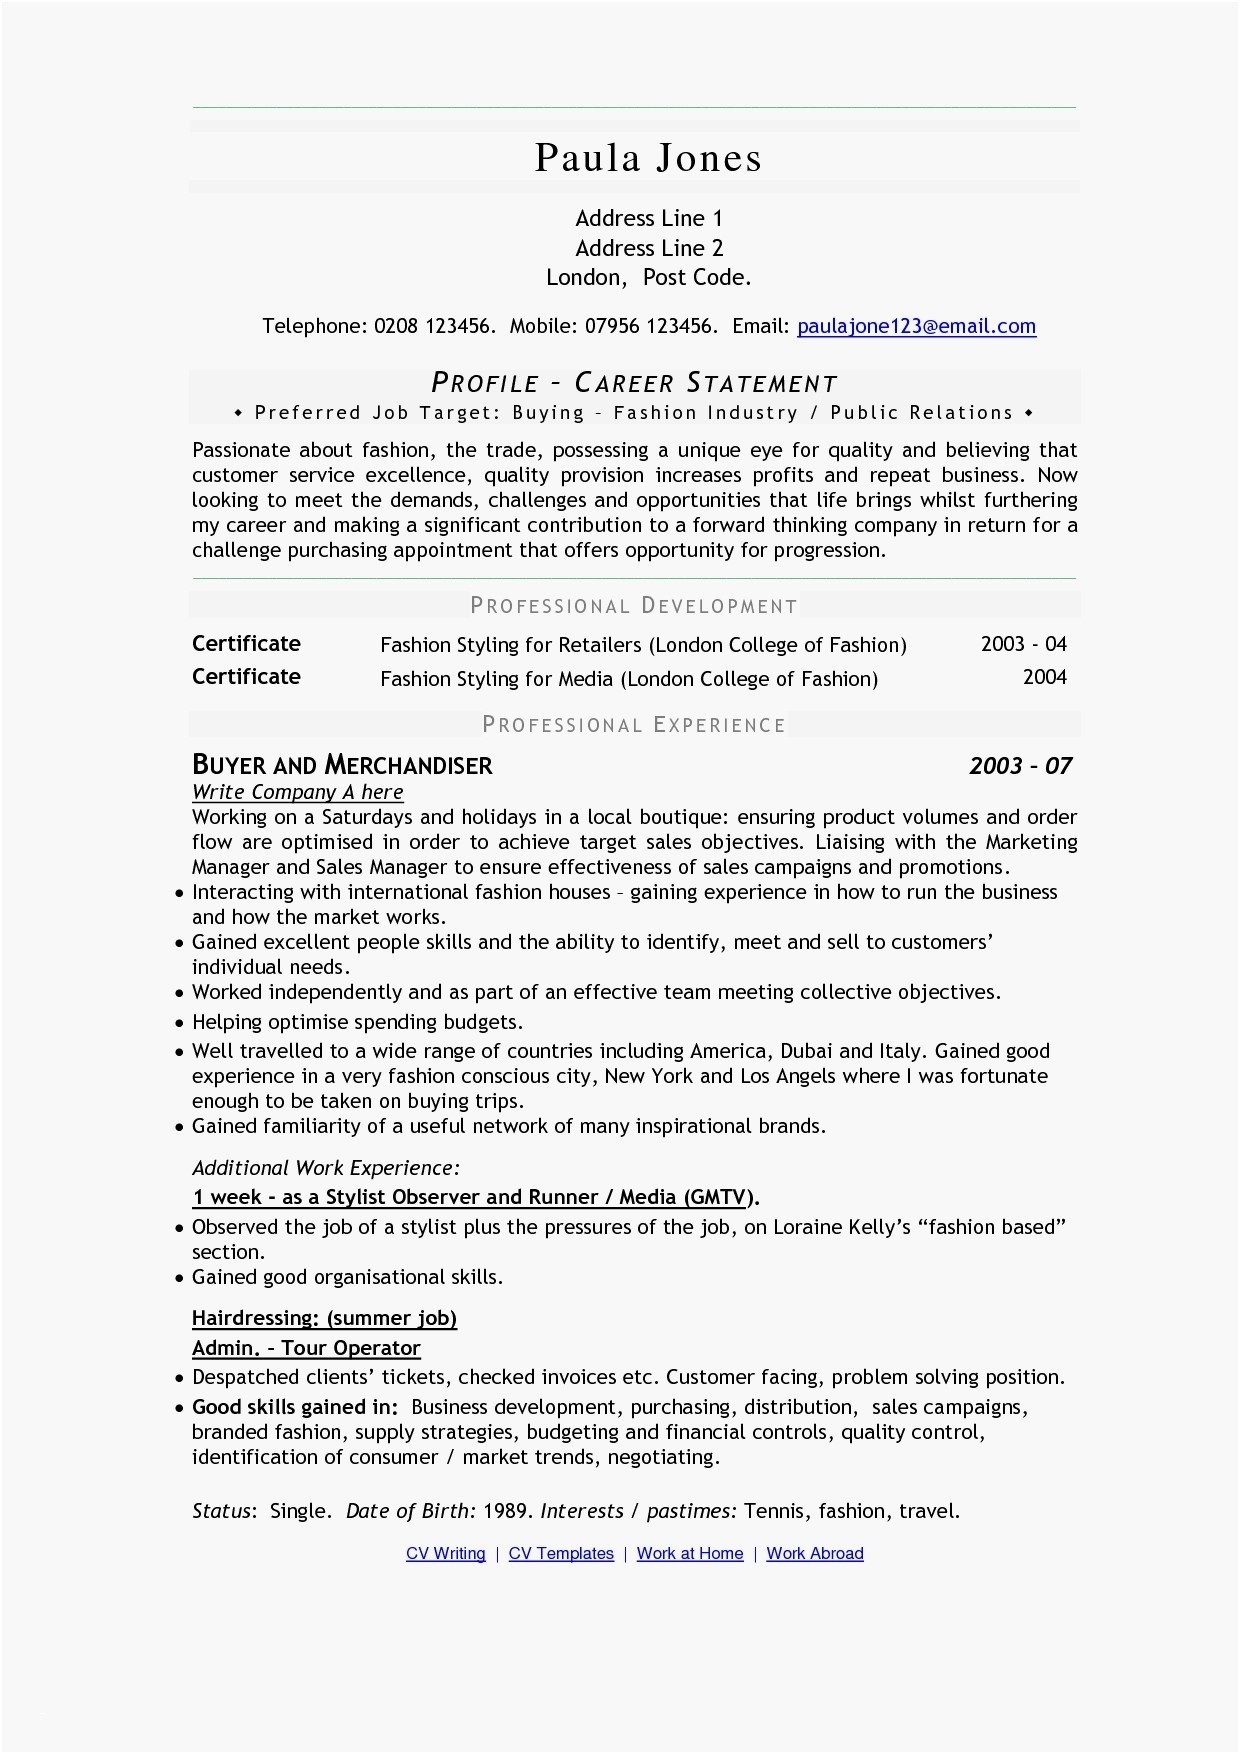 Best Professional Resume Writers - Writing Skills Resume Lovely Resume Writing Services Aggiegeeks